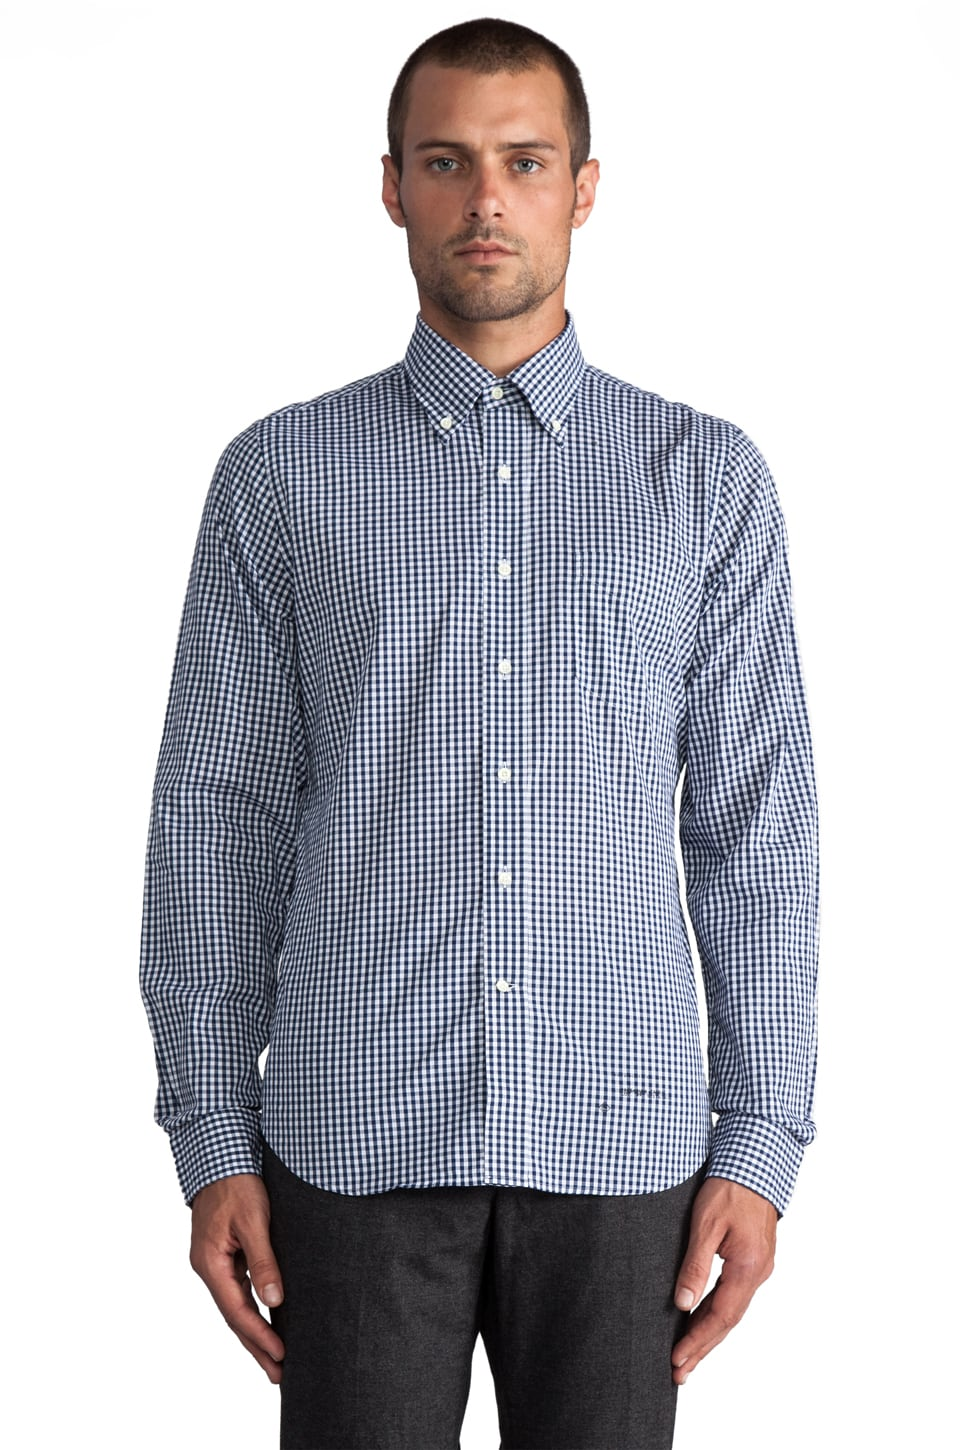 GANT Rugger Imported Fabric Gingham Button Down in Blue